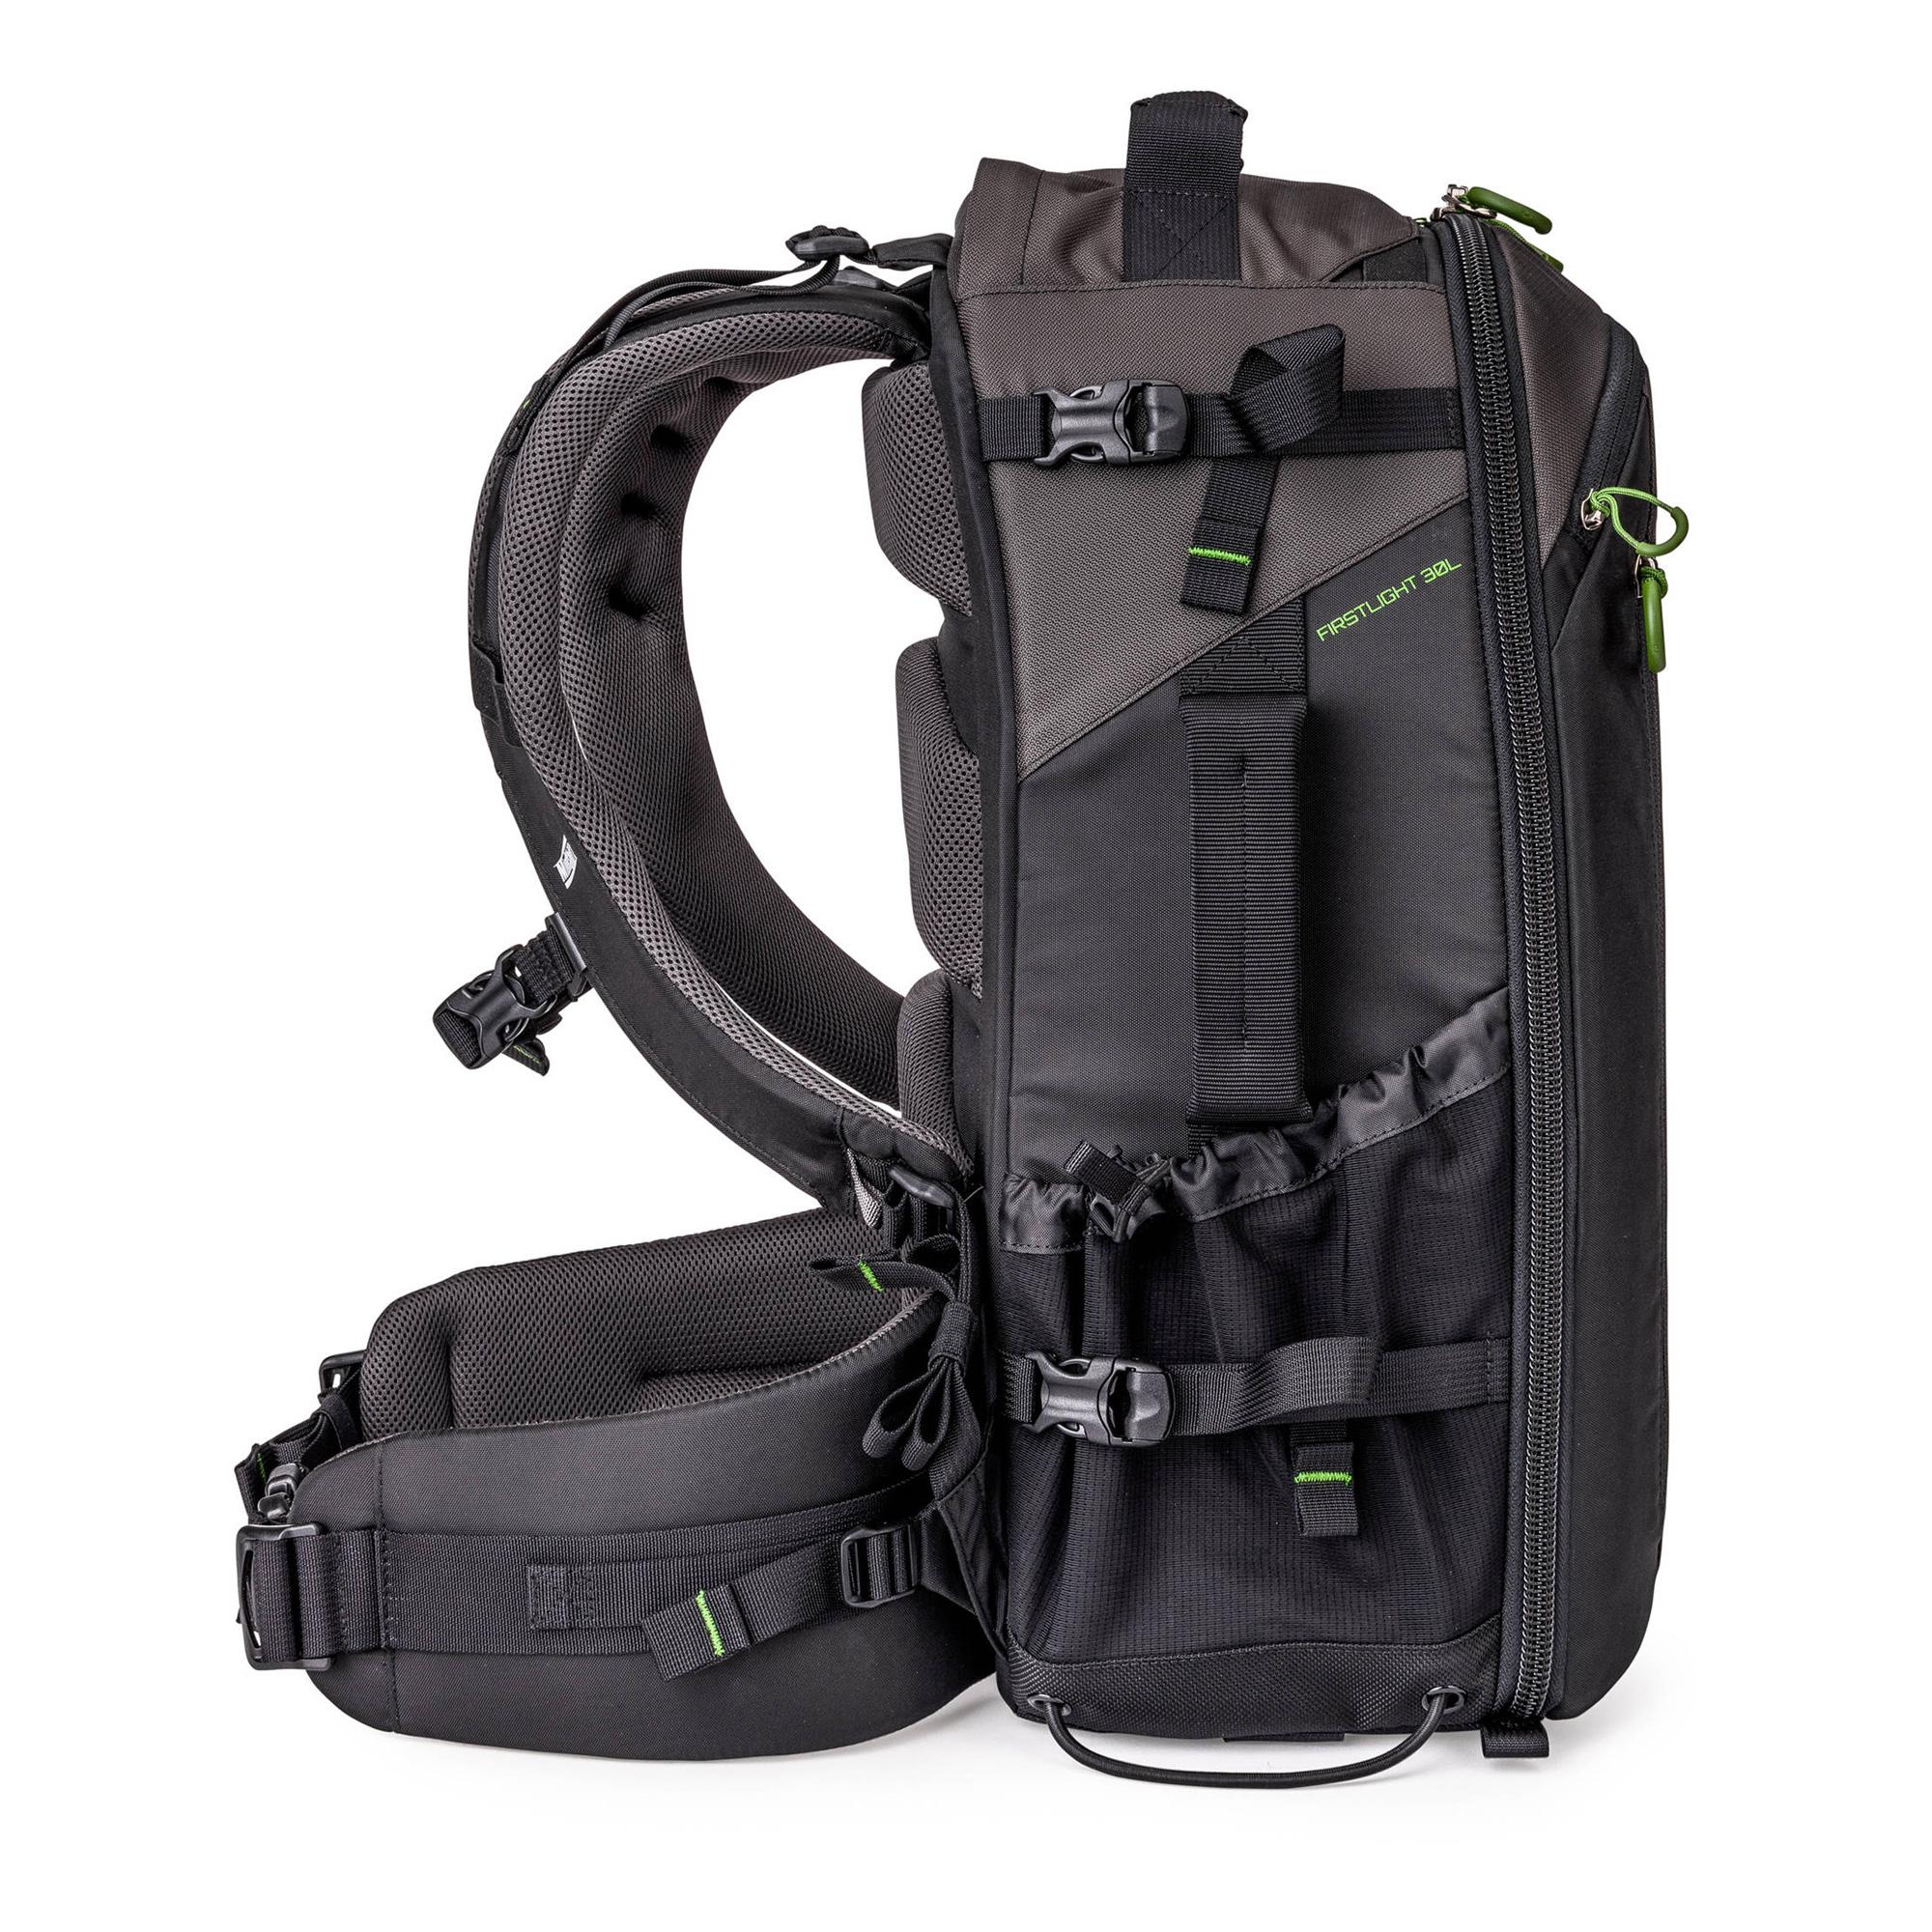 FirstLight 30L DSLR and Laptop Backpack Charcoal